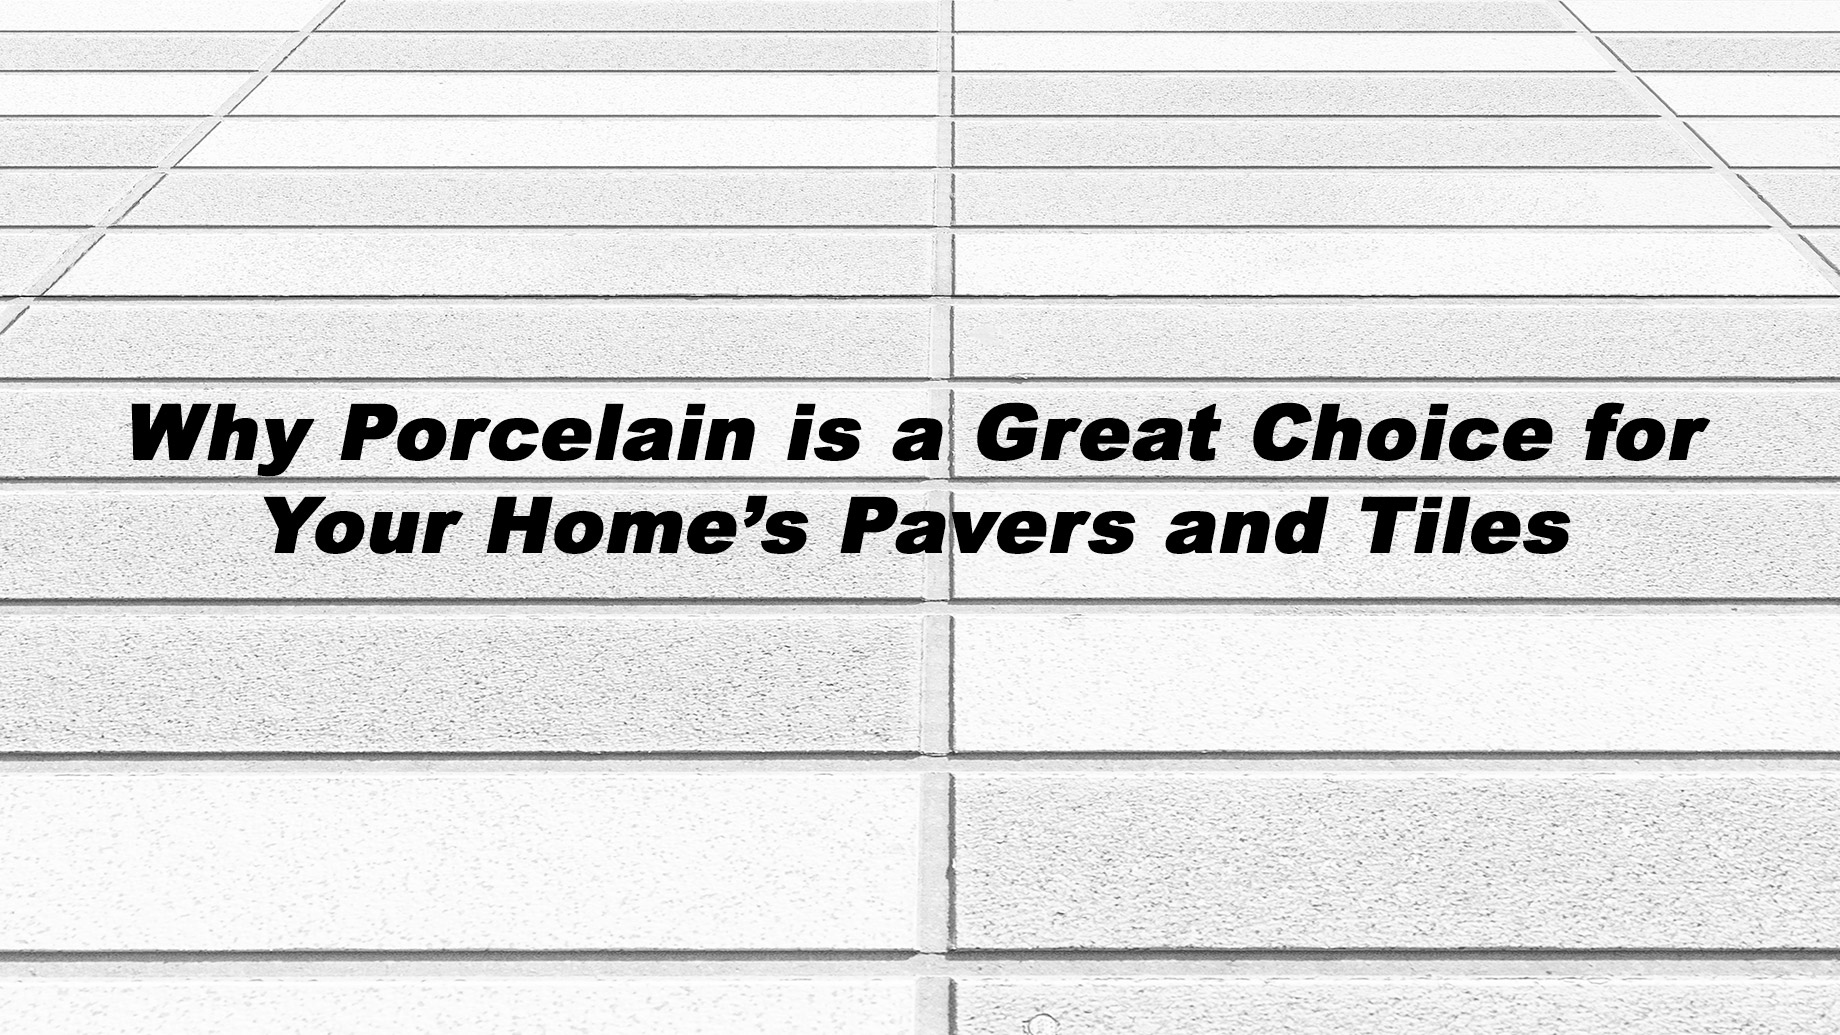 Why Porcelain is a Great Choice for Your Home's Pavers and Tiles